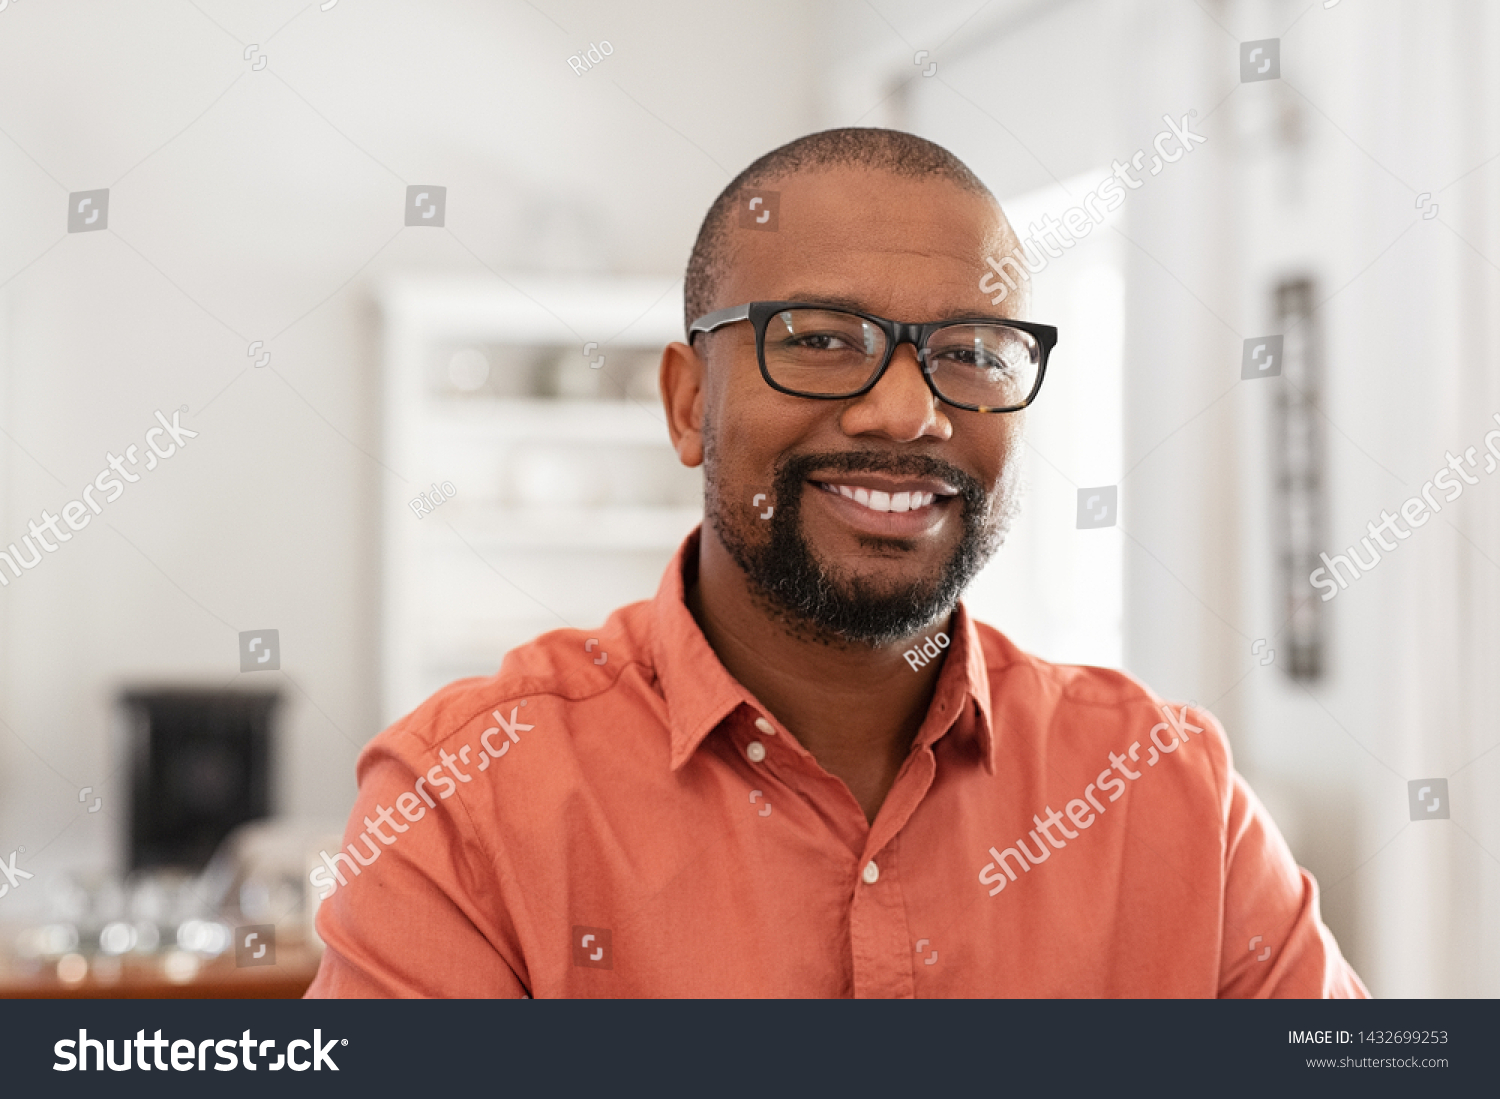 Smiling mature man wearing spectacles looking at camera. Portrait of black confident man at home. Successful entrepreneur feeling satisfied. #1432699253